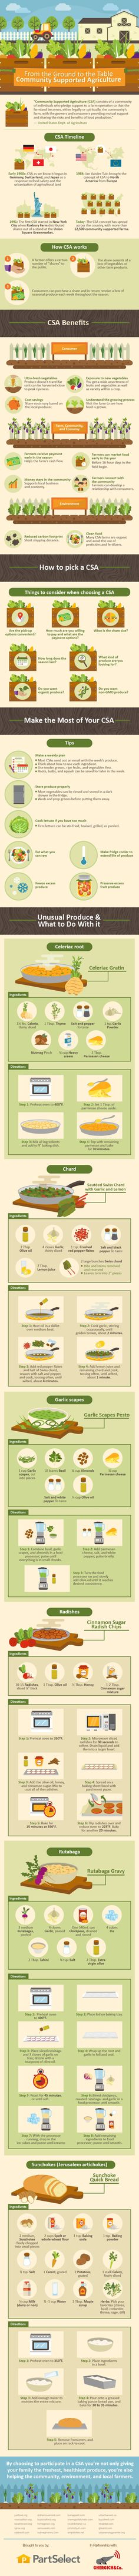 From the Ground to the Table: Community Supported Agriculture #Infographic #Agriculture